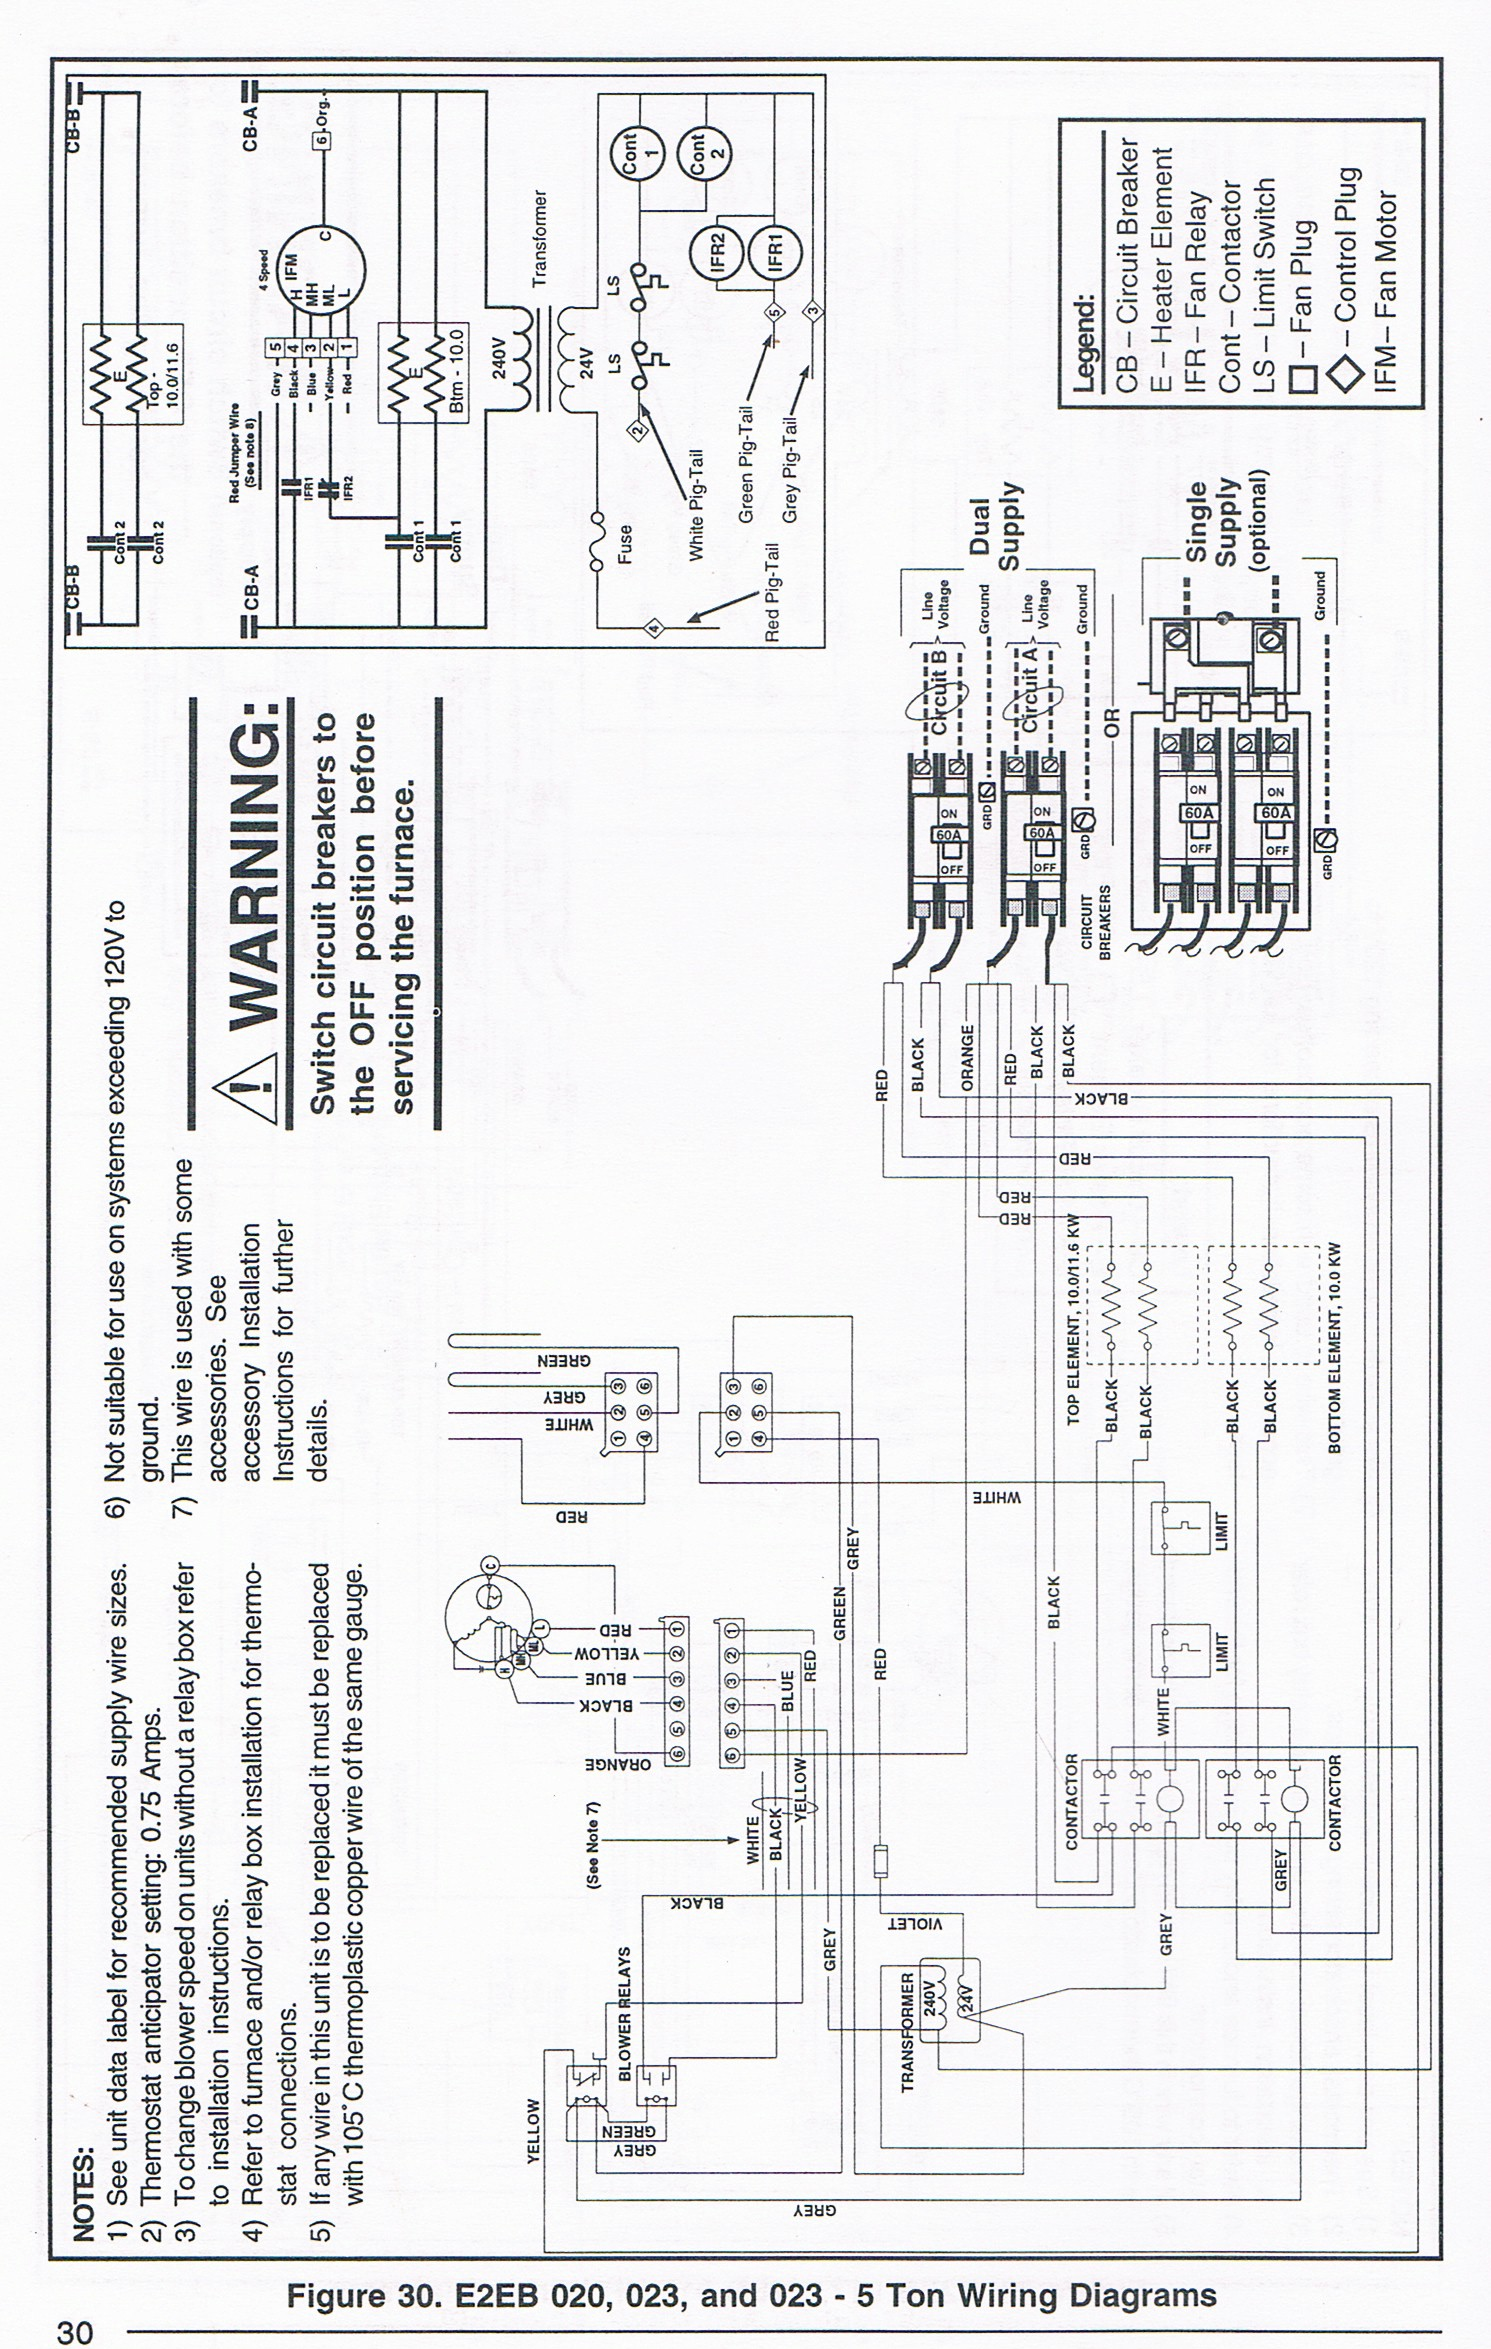 Nordyne E2eb 015ha Wiring Diagram Opinions About Ford Xg Ute Electric Furnace 017ha Free Engine Image For User Manual